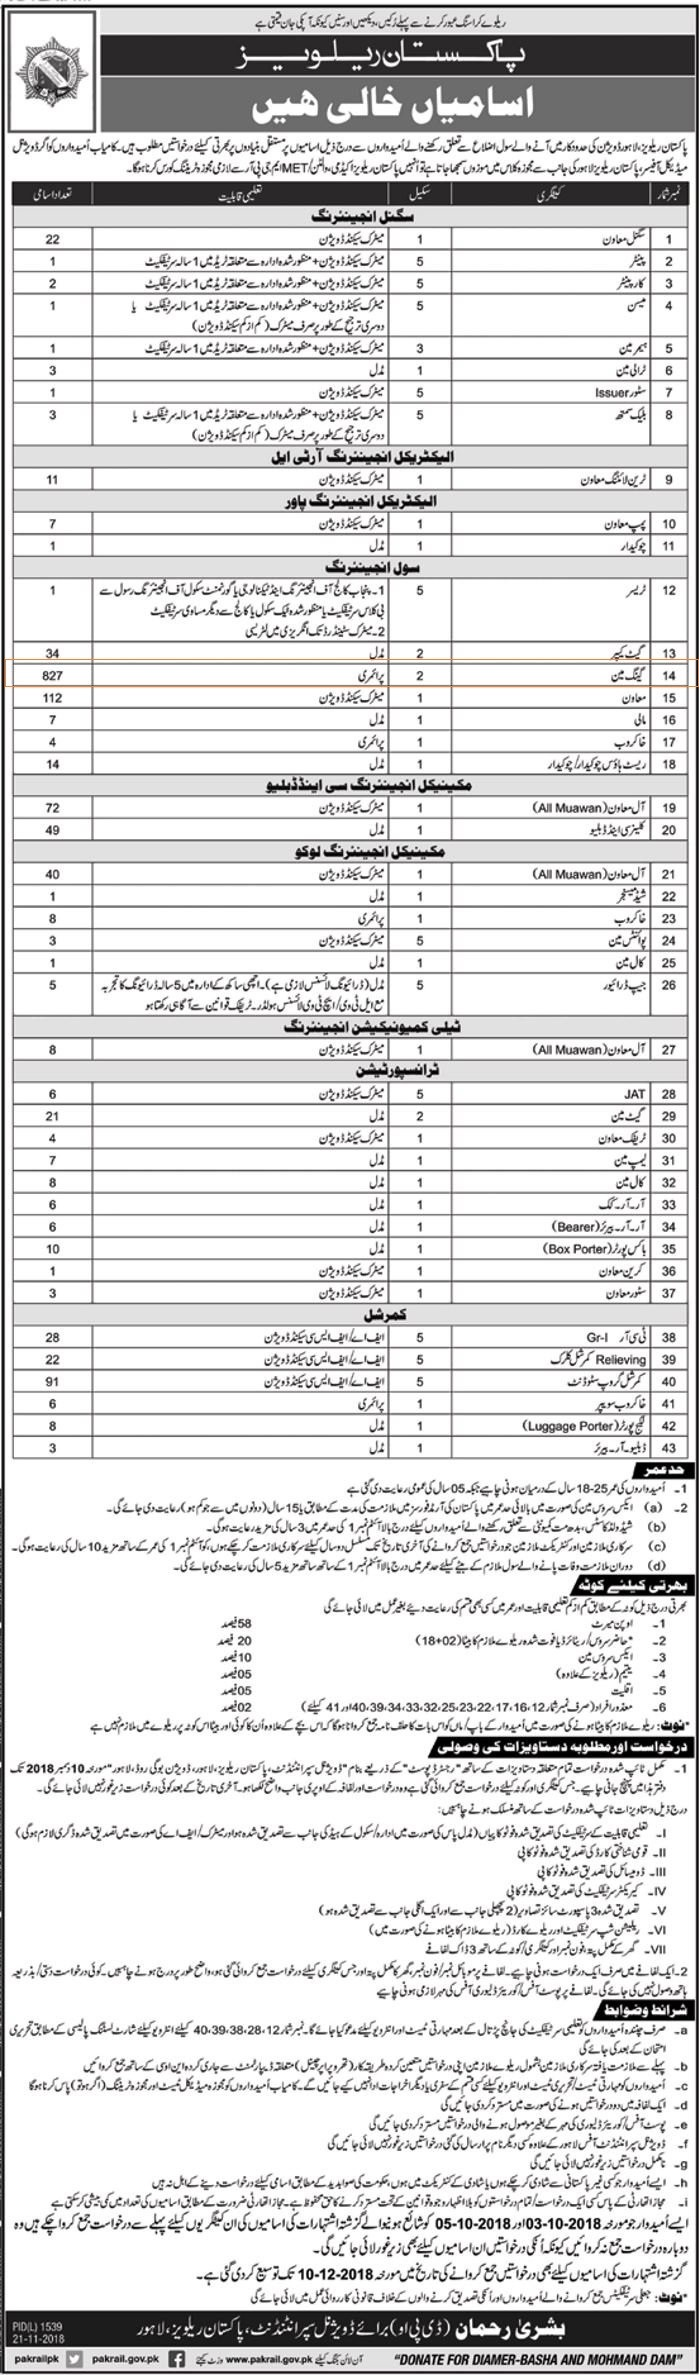 827 Posts of Gangman in Pakistan Railway headquarter Lahore regions Latest Jobs Advertisement 2018